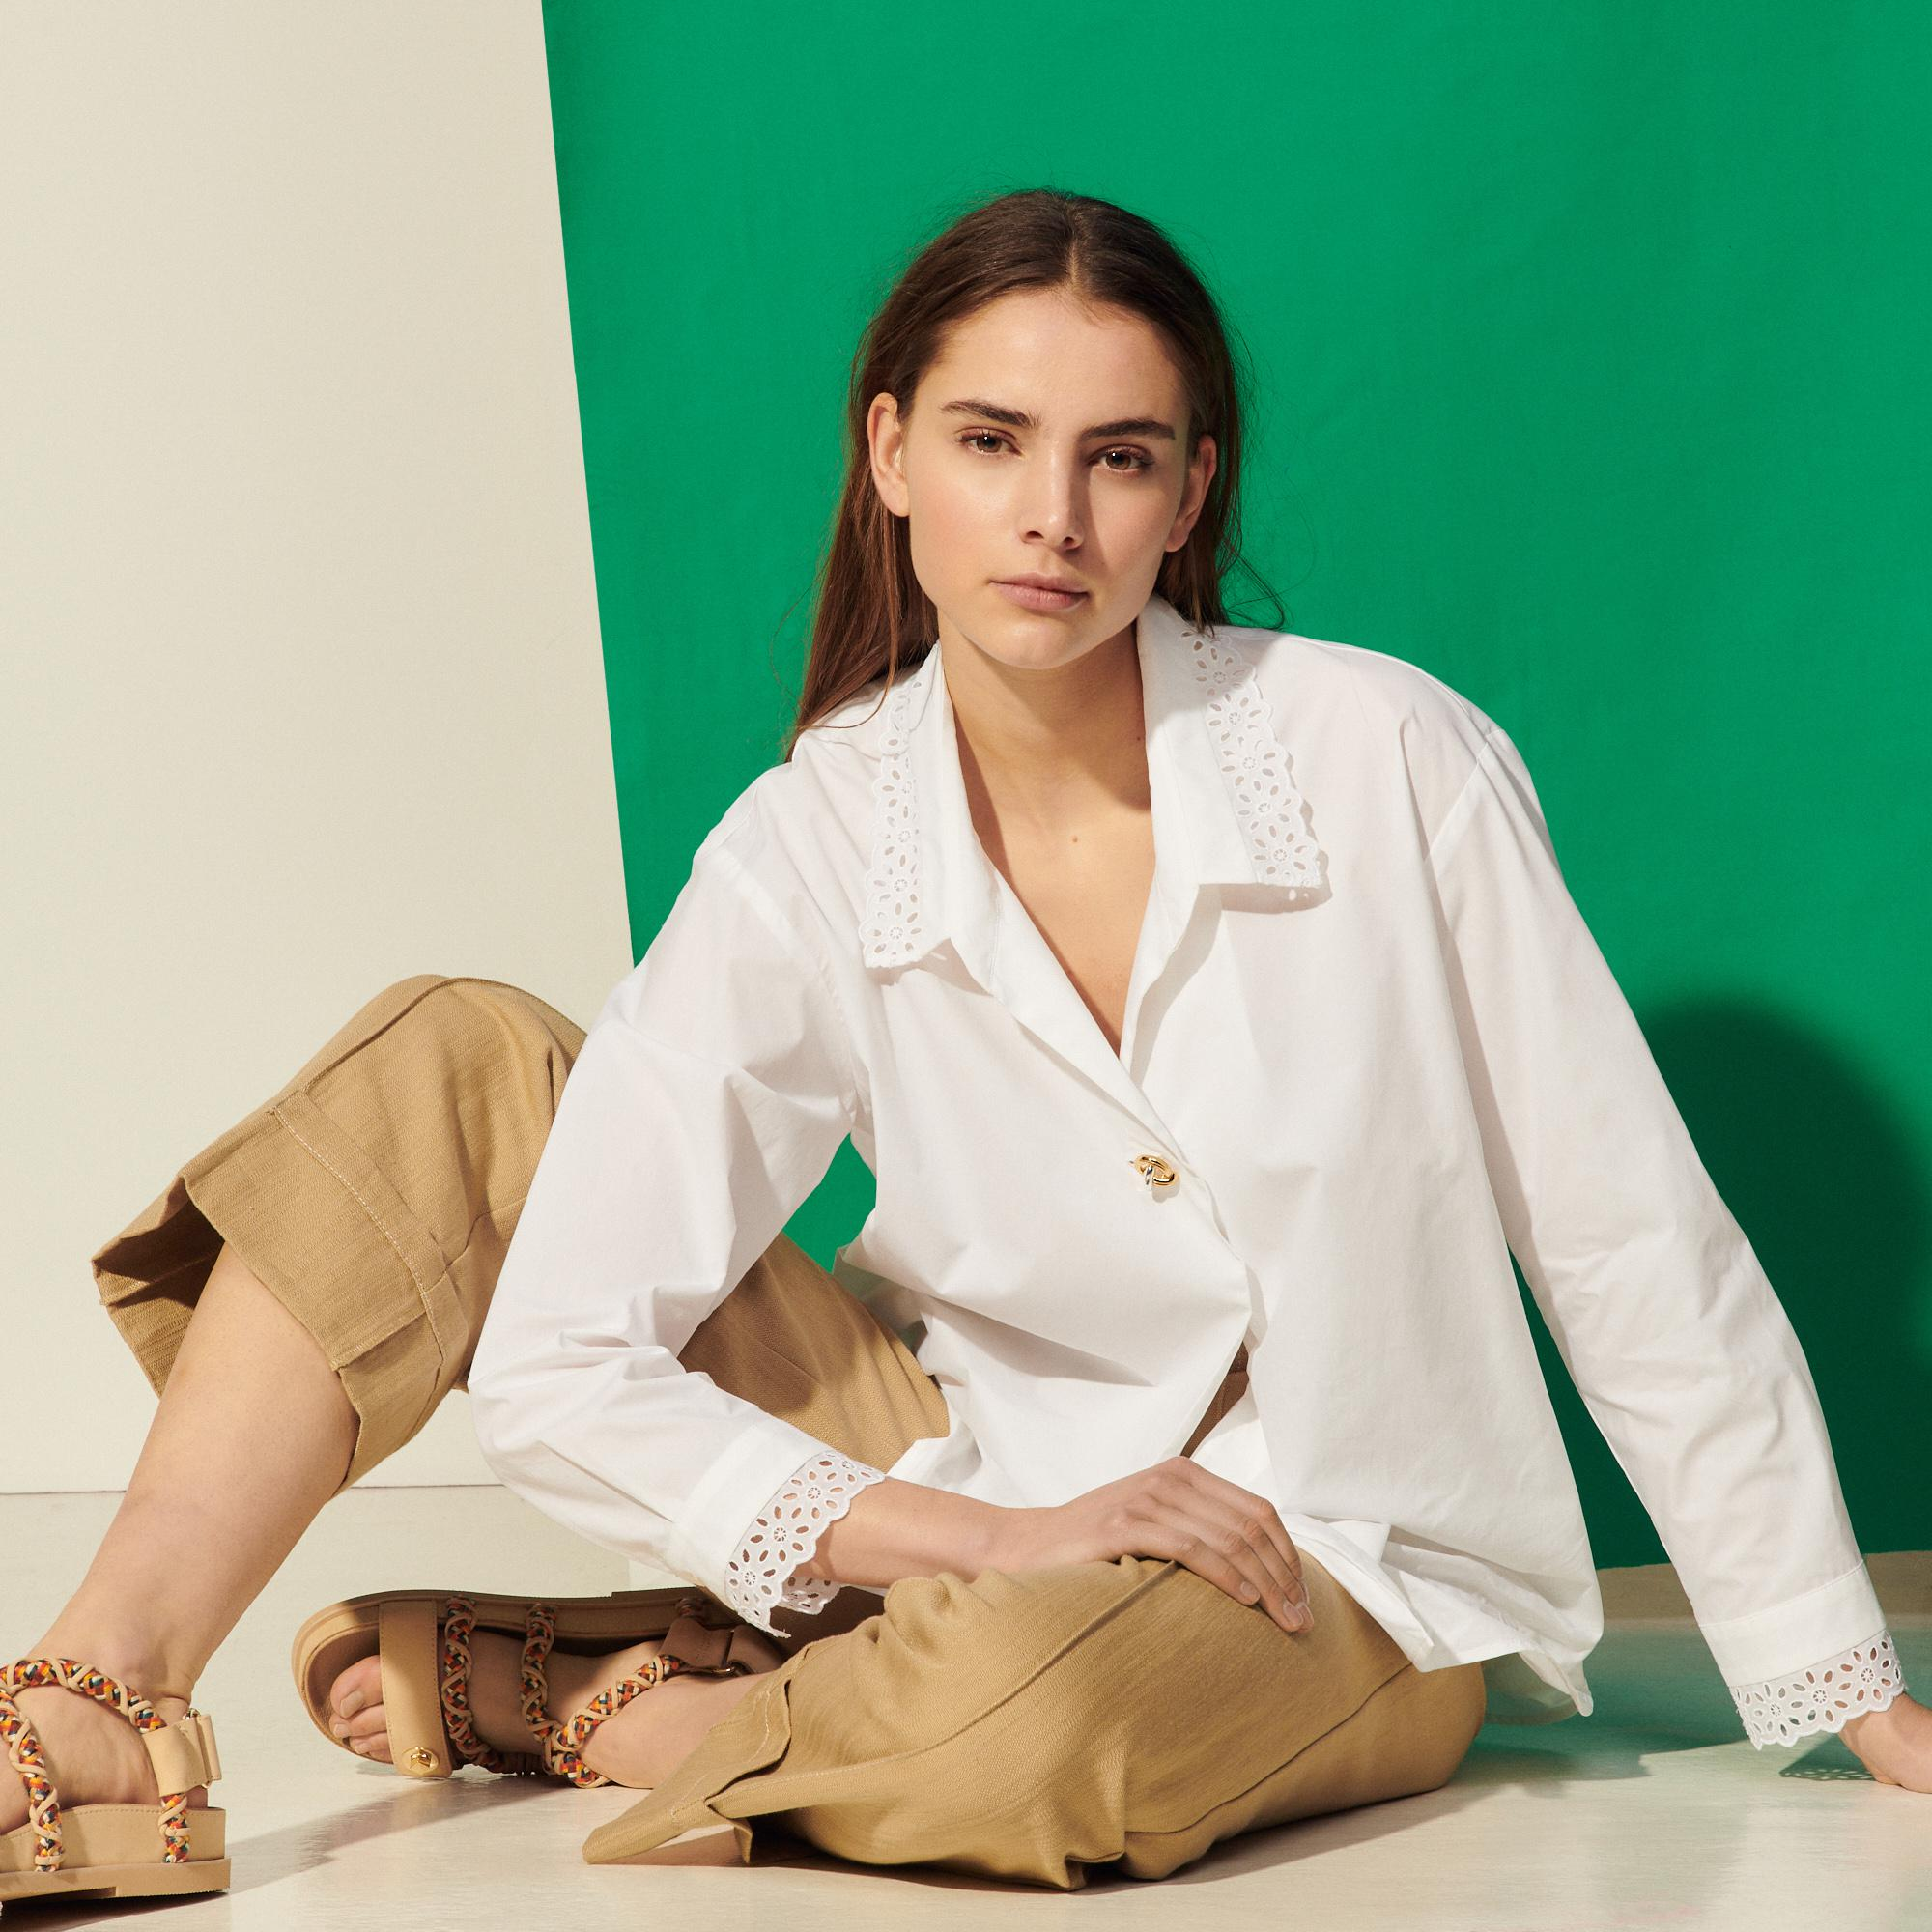 Shirt with broderie anglaise collar